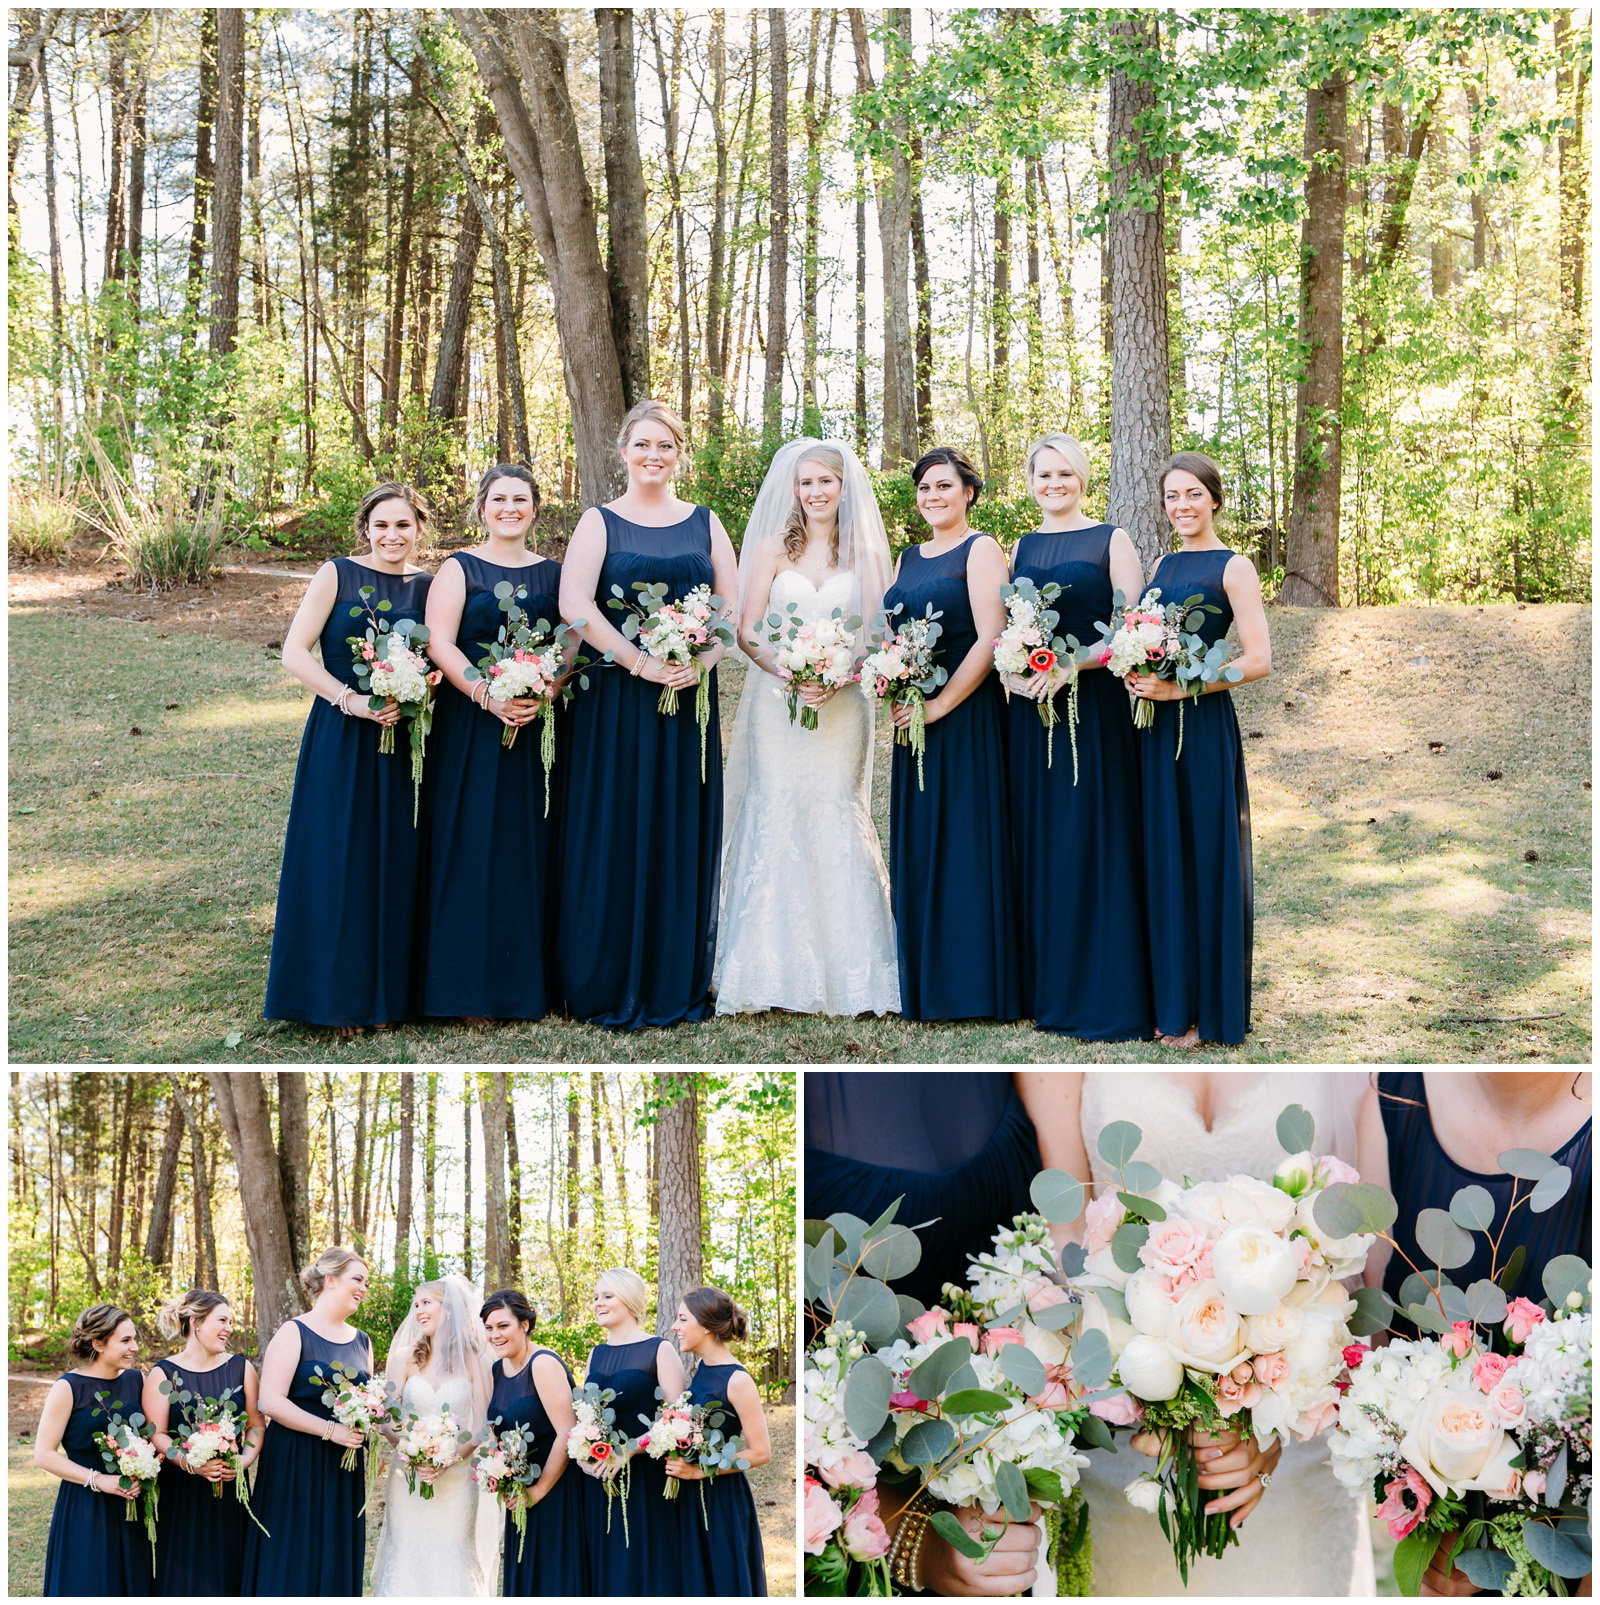 Morgan & Kyle_RoswellWedding_ArdentStory_0020